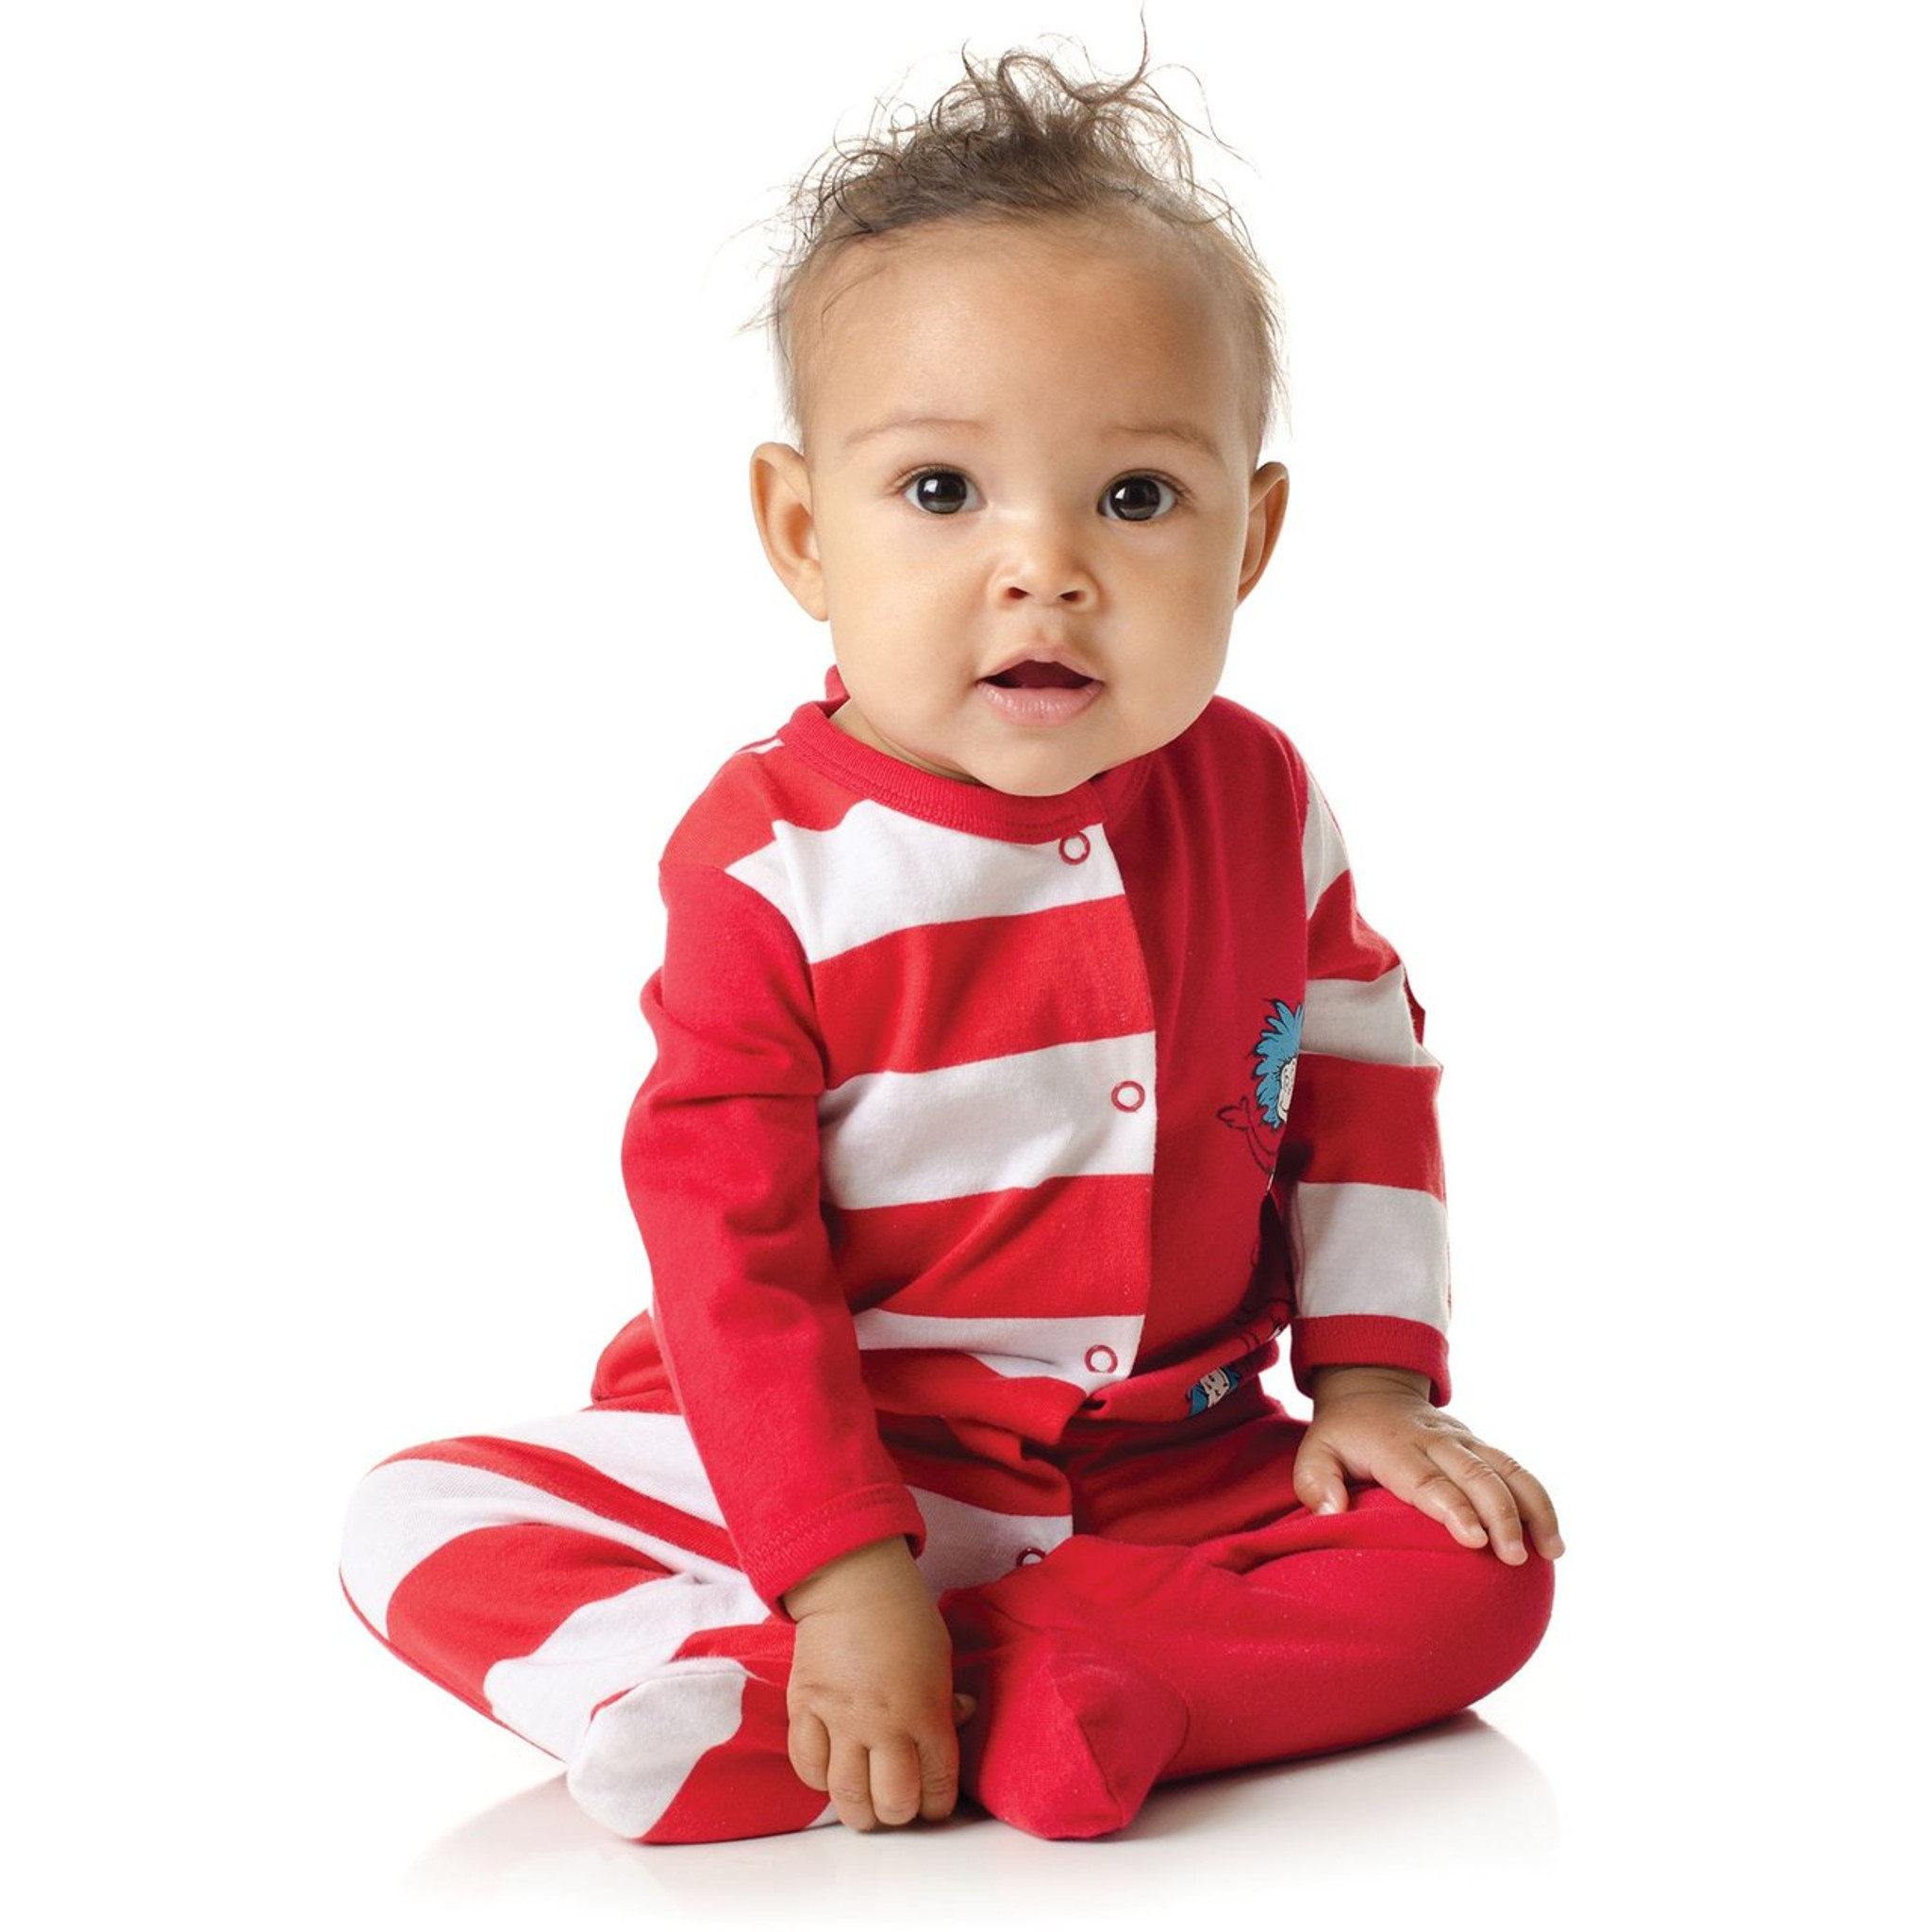 Remarkable Kids Thing 1 Thing 2 Baby Shower Thing 1 Thing 2 Dog Costumes Thing Pajamas Thing Footed Sleeper Set Thing Thing baby Thing 1 Thing 2